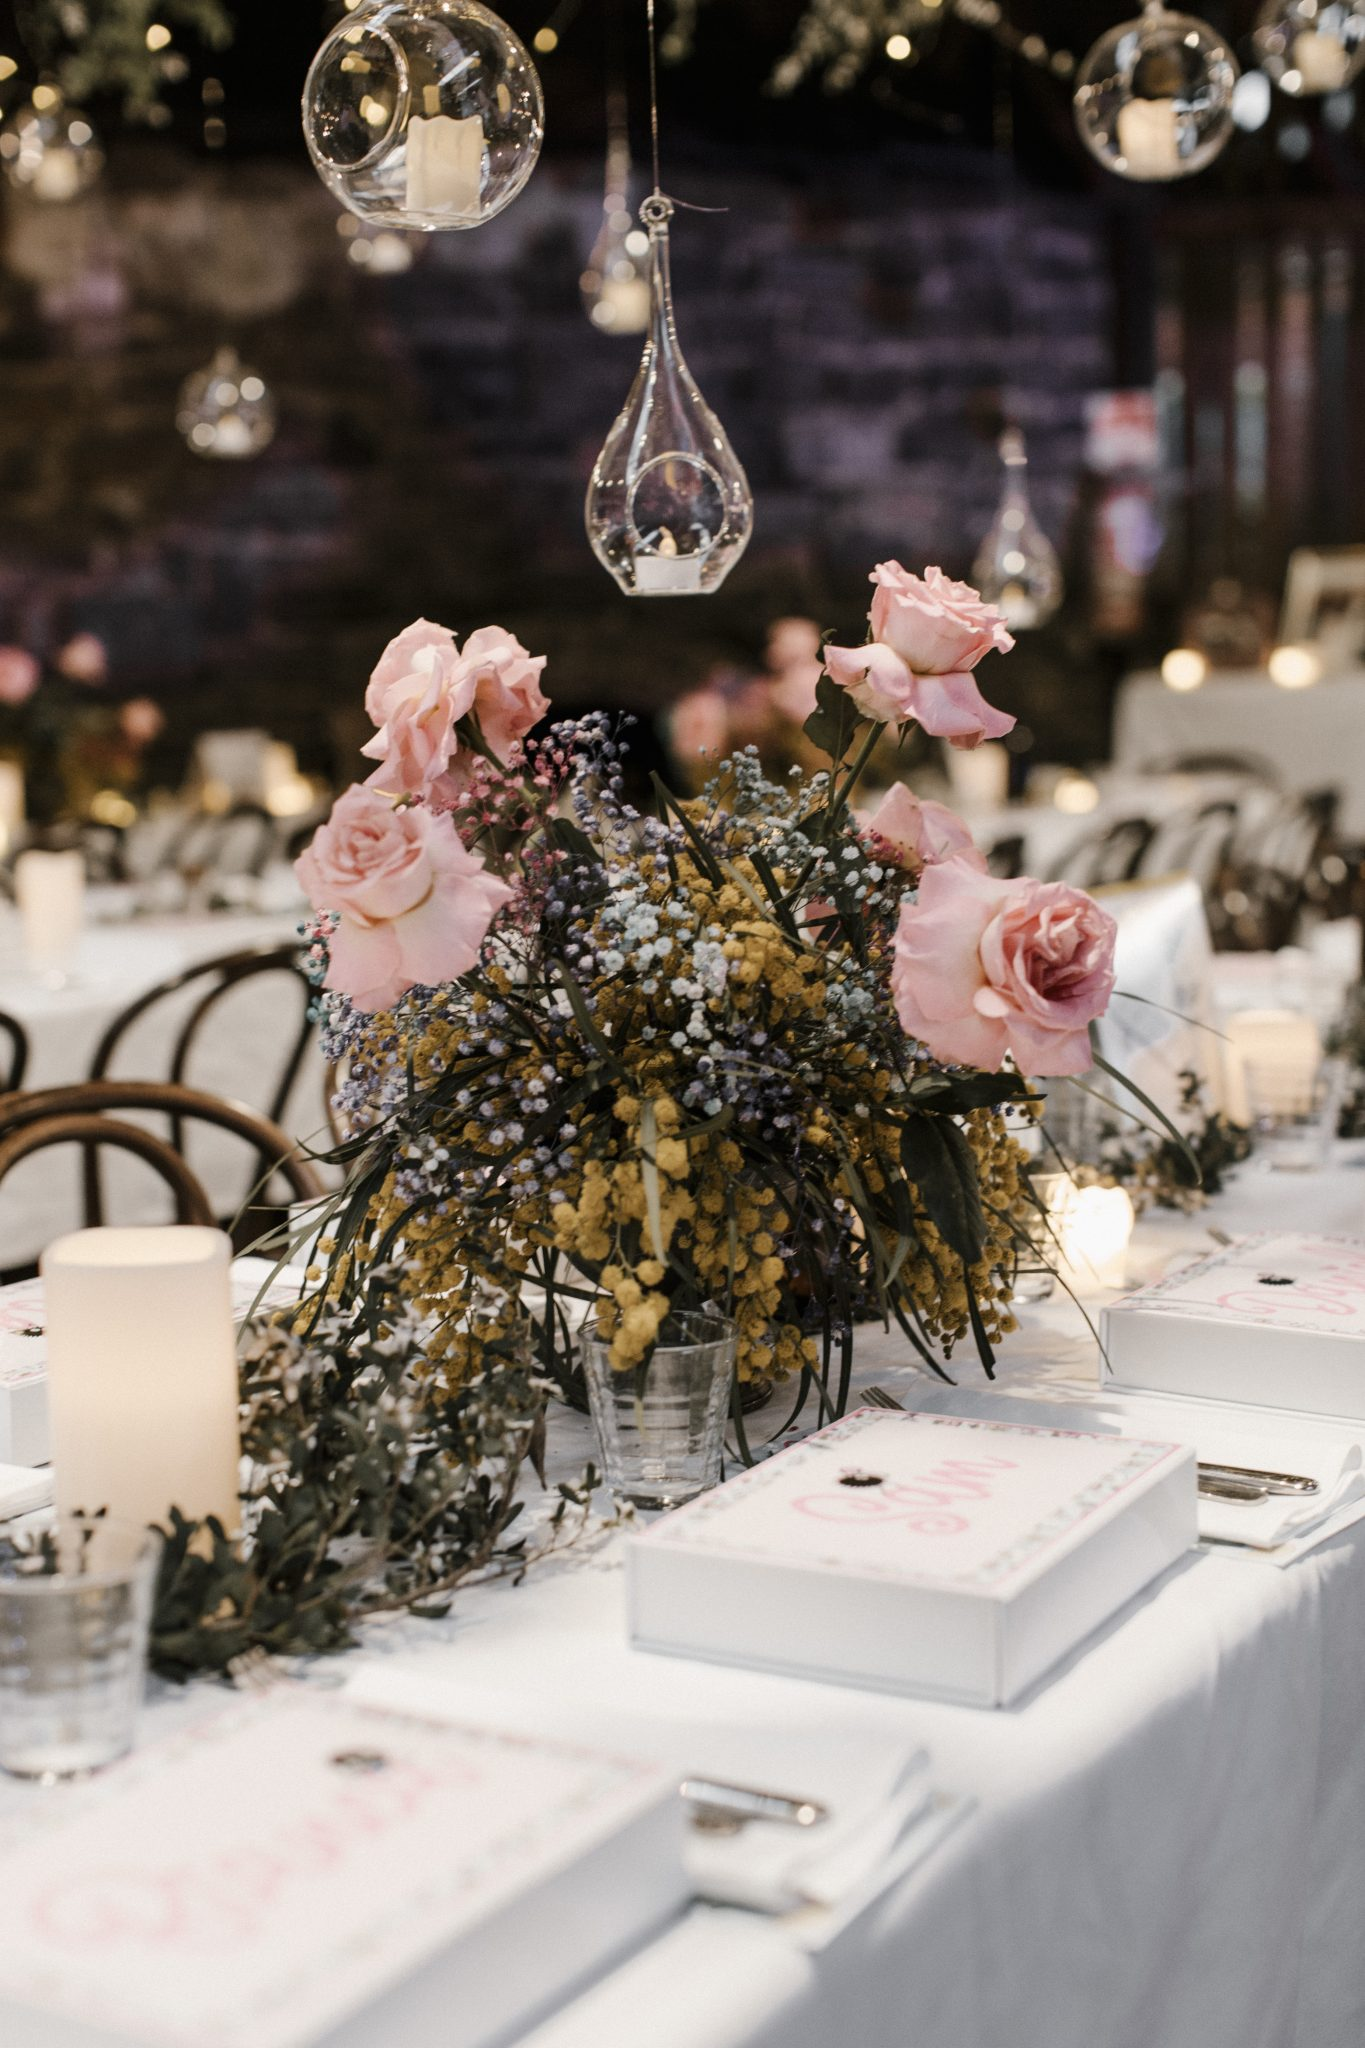 Whimsical Dollhouse Wedding Reception - Luna Moss table arrangements